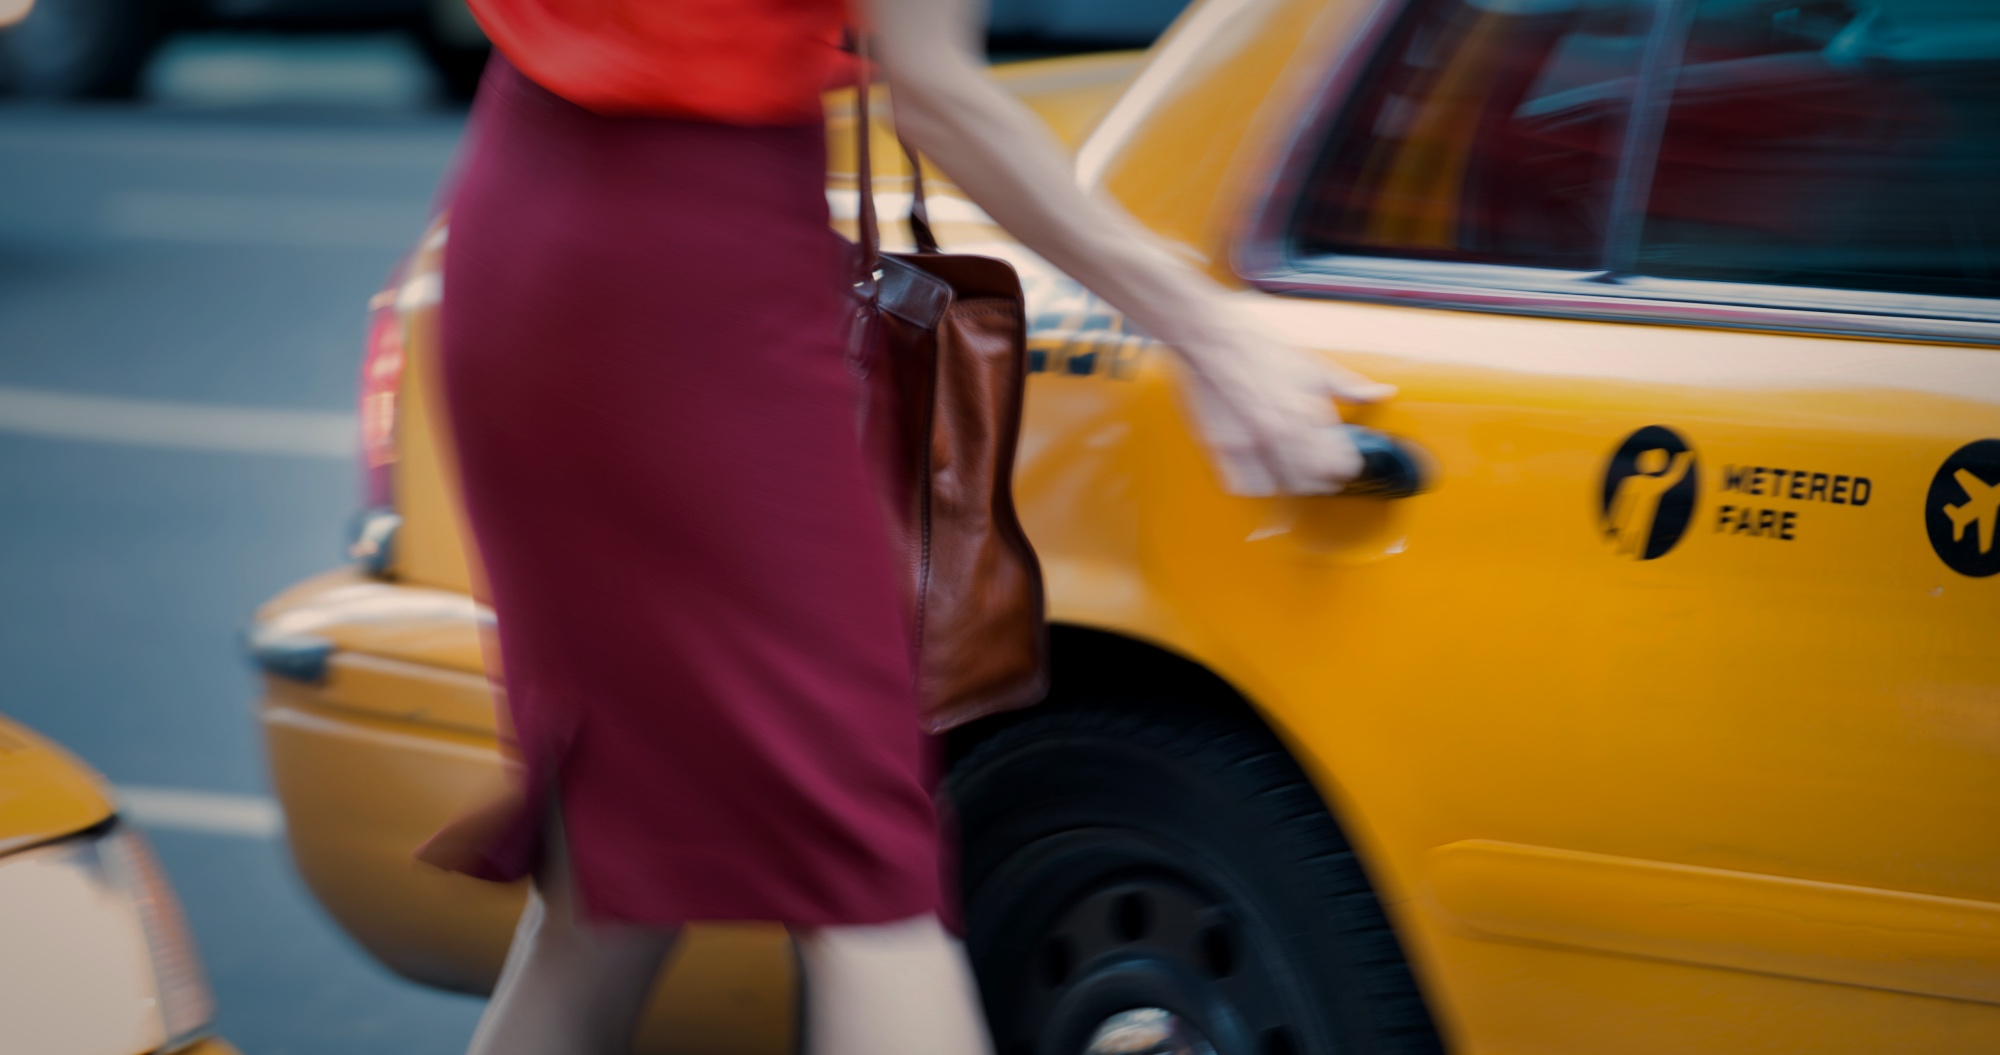 """Taxi Porn"" Study: Porn Fantasies Can Warp Consumers' Sexpectations in Reality"